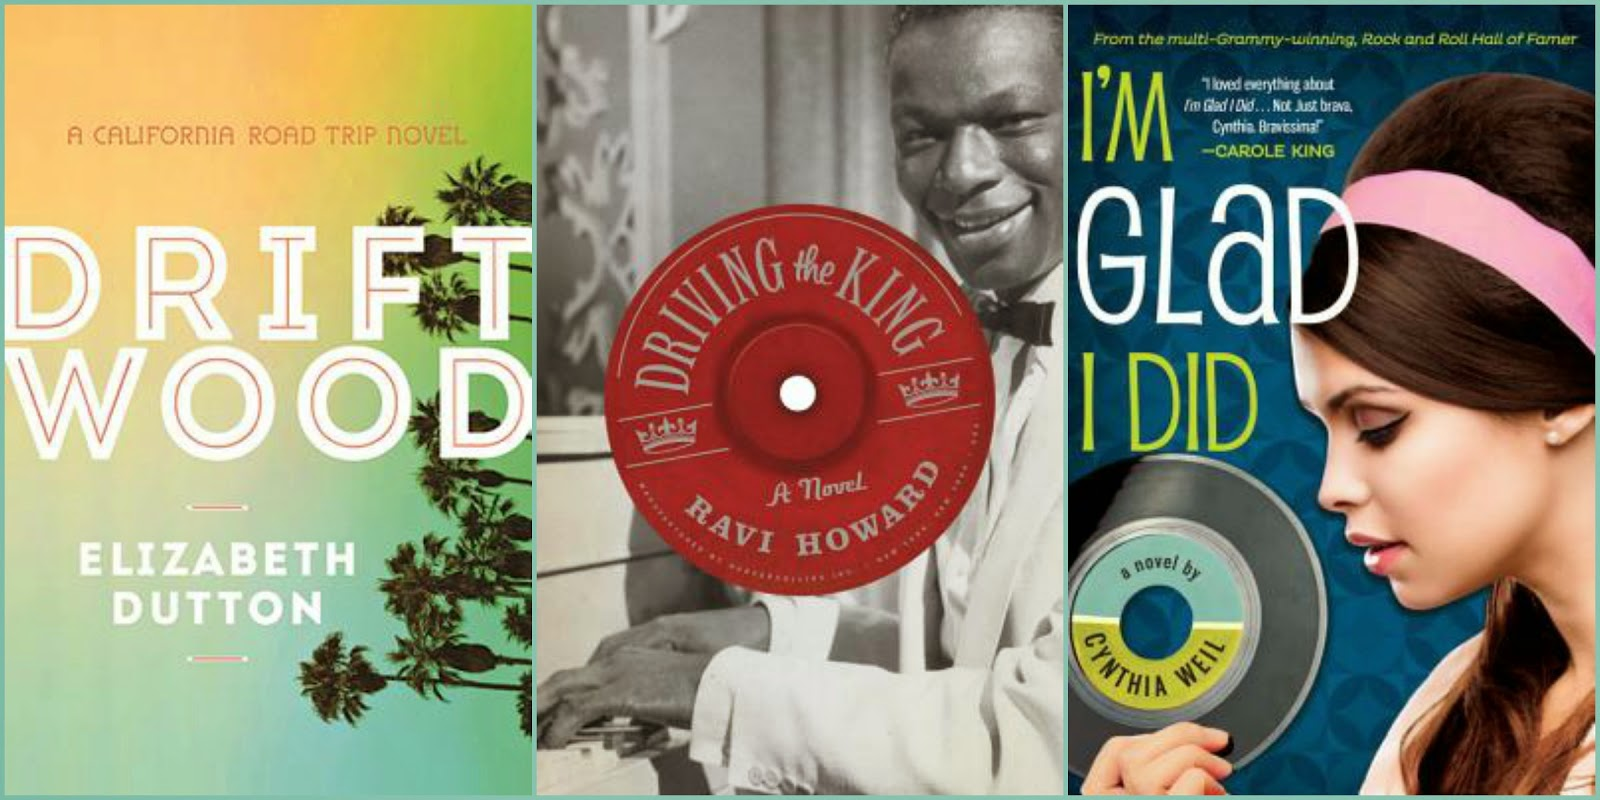 Driftwood by Elizabeth Dutton, Driving the King by Ravi Howard, I'm Glad I did by Cynthia Weil